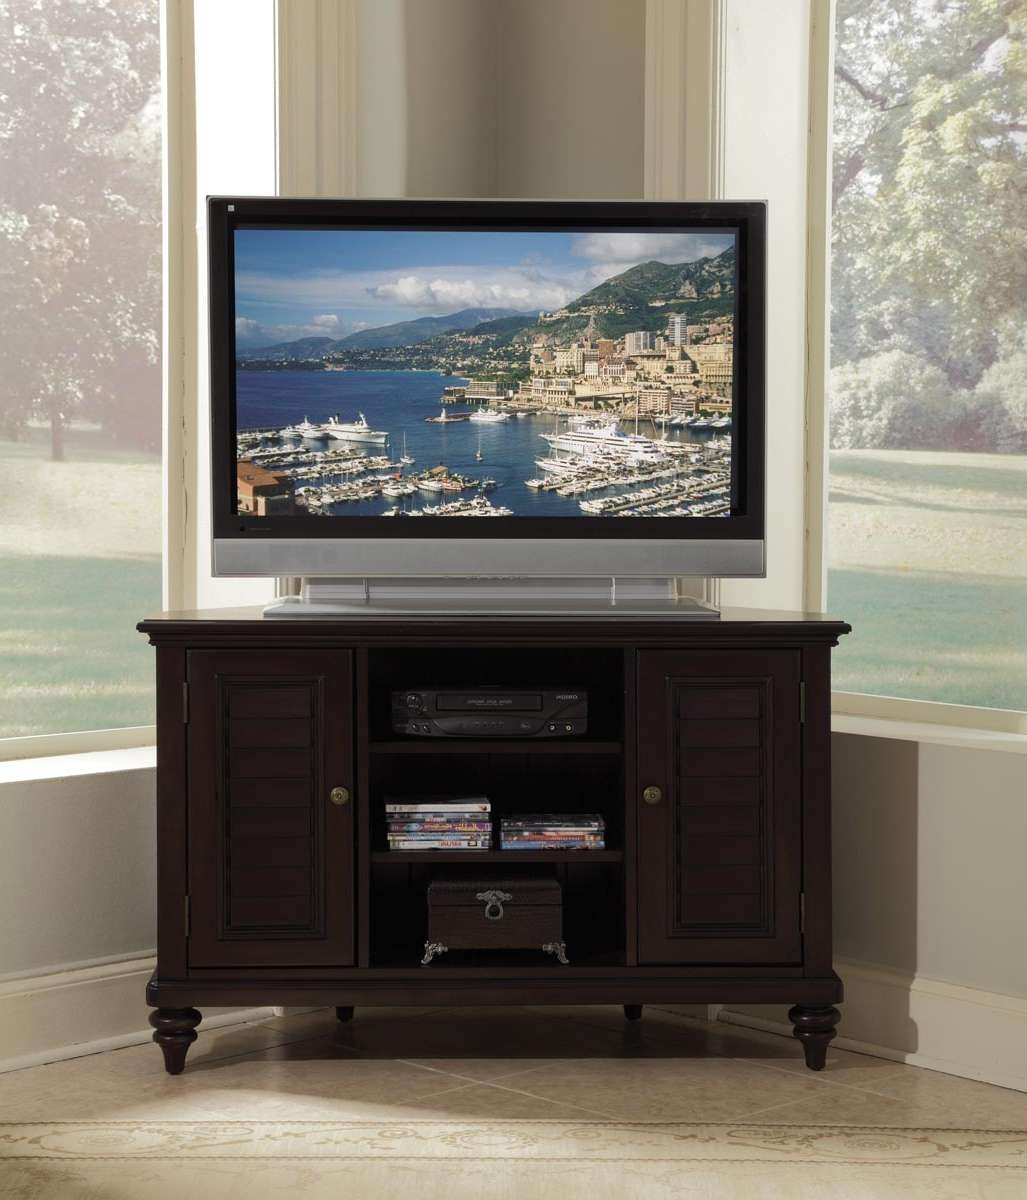 Chic And Modern Tv Wall Mount Ideas For Living Room Corner Inside Compact Corner Tv Stands (View 4 of 15)